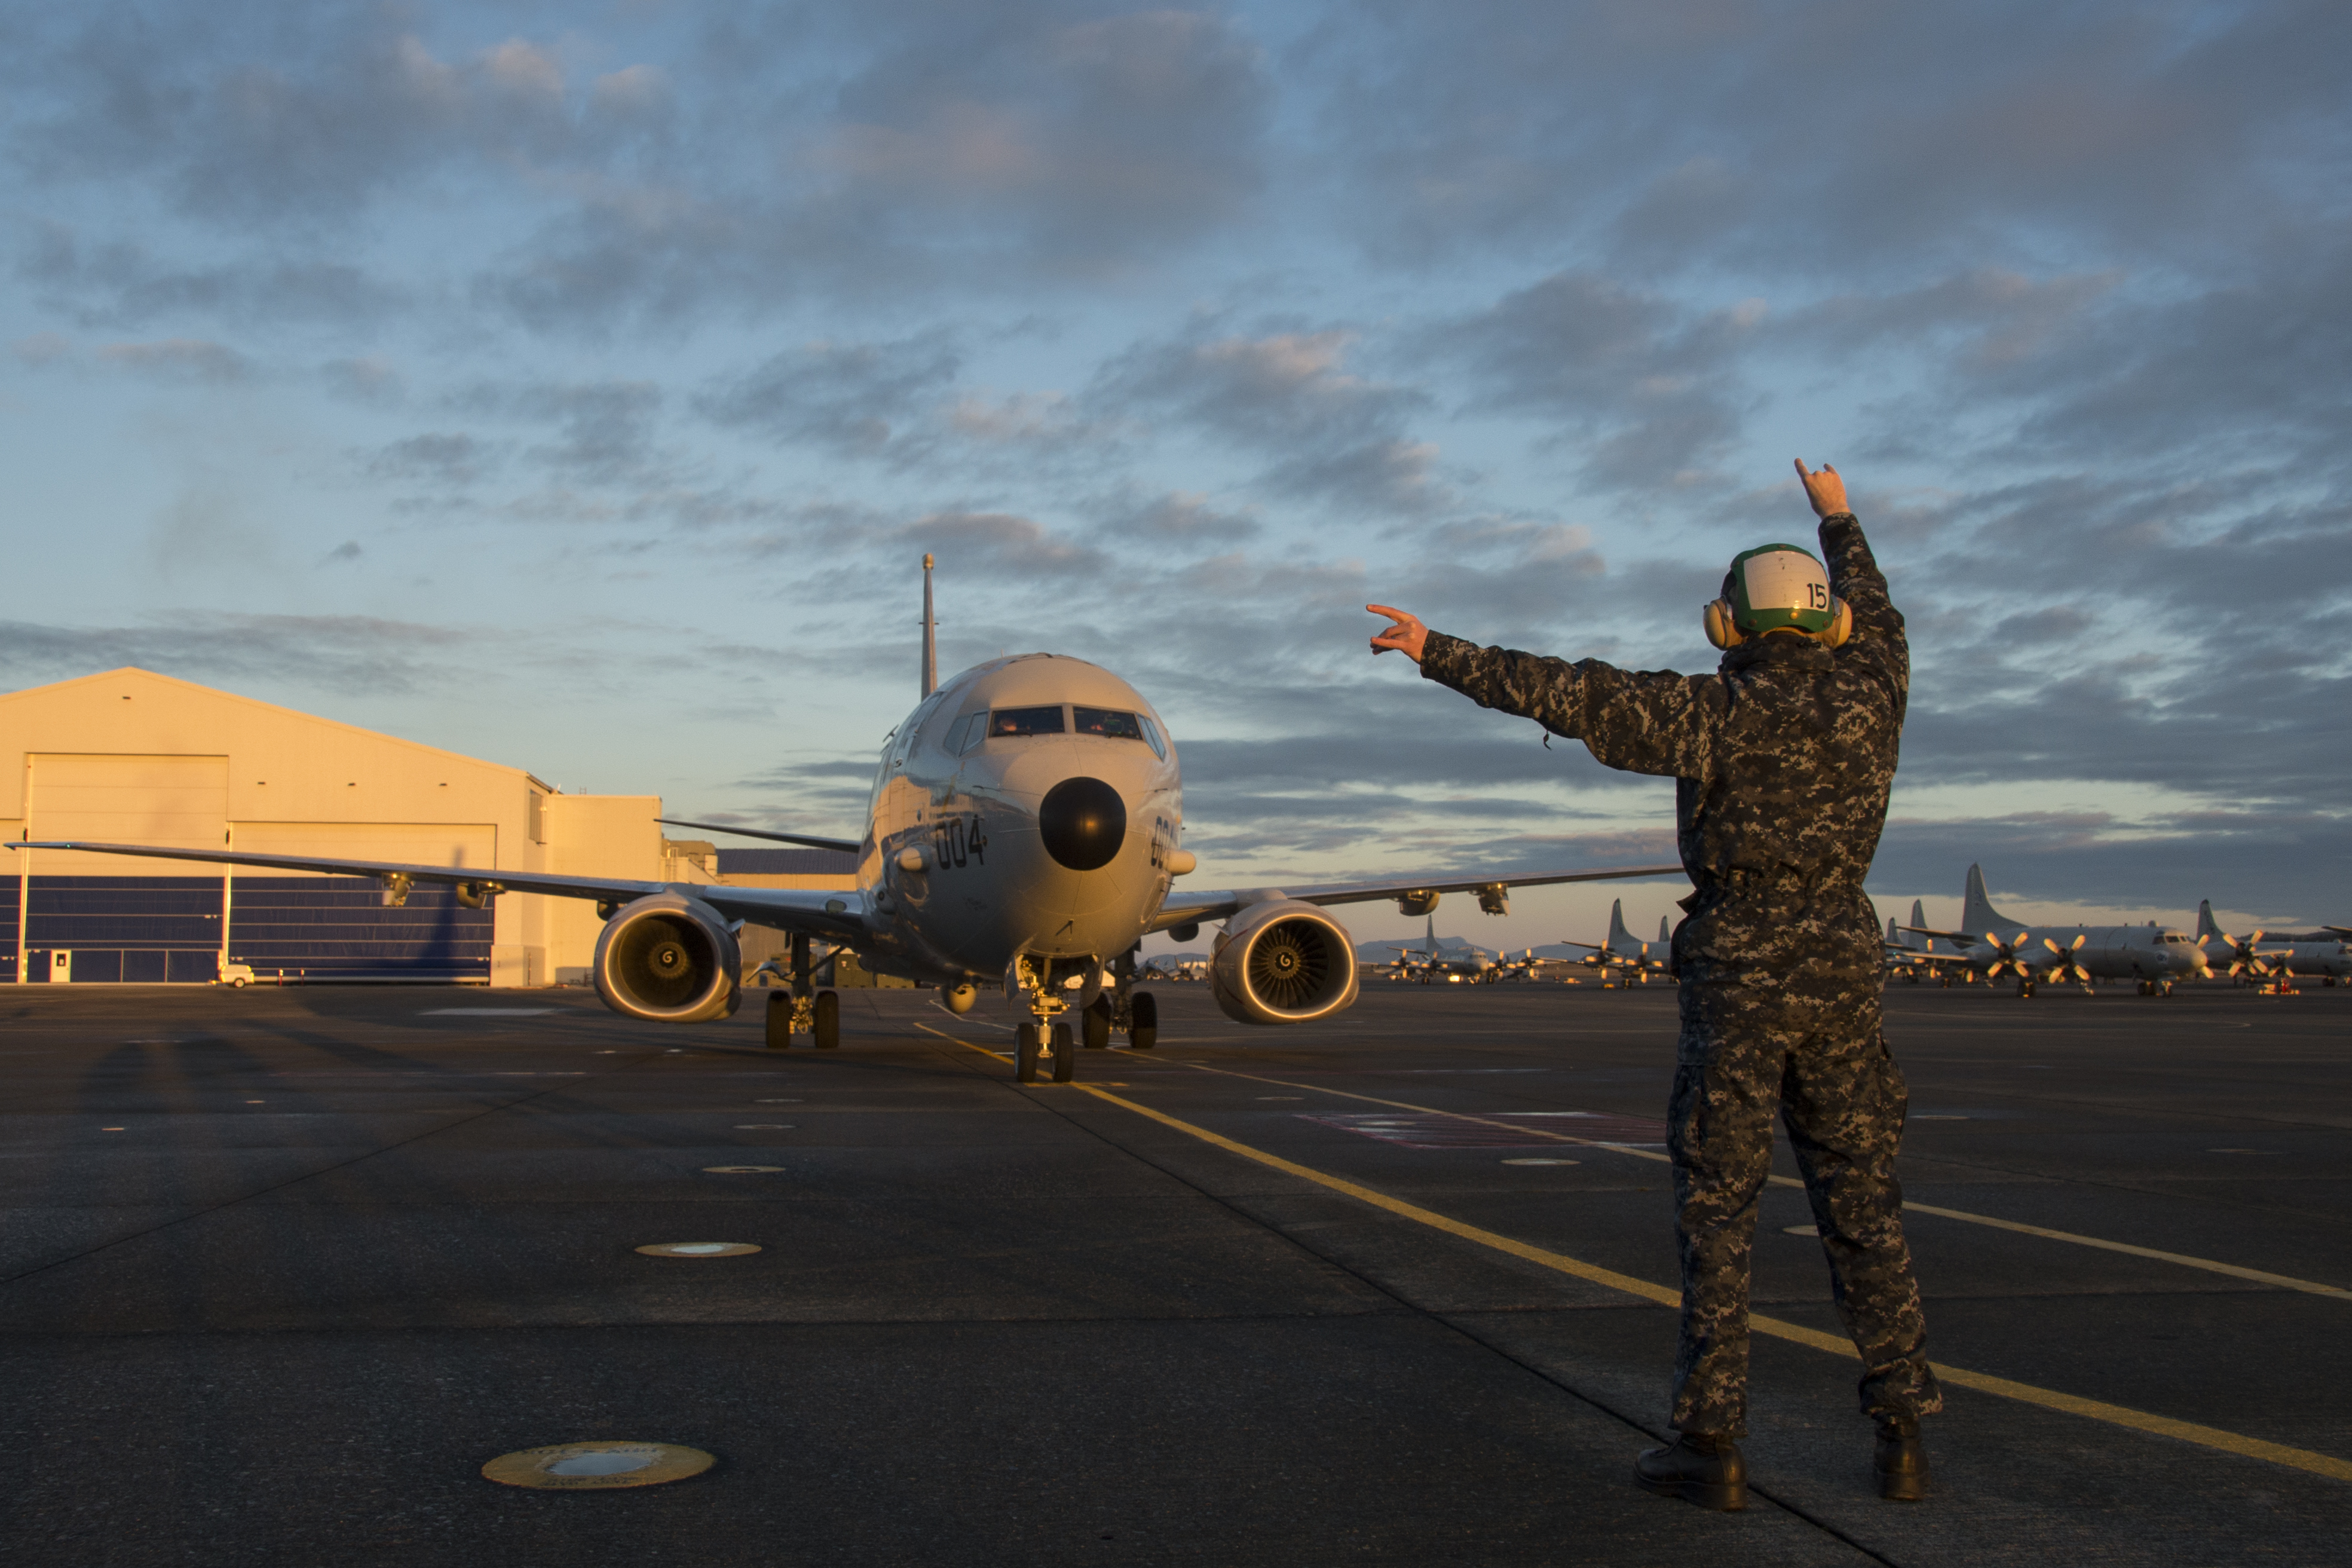 A U.S. Navy sailor directs a P-8 Poseidon flight on Naval Air Station Whidbey Island's Ault Field in 2020. (Petty Officer 3rd Class Juan Sua/U.S. Navy)